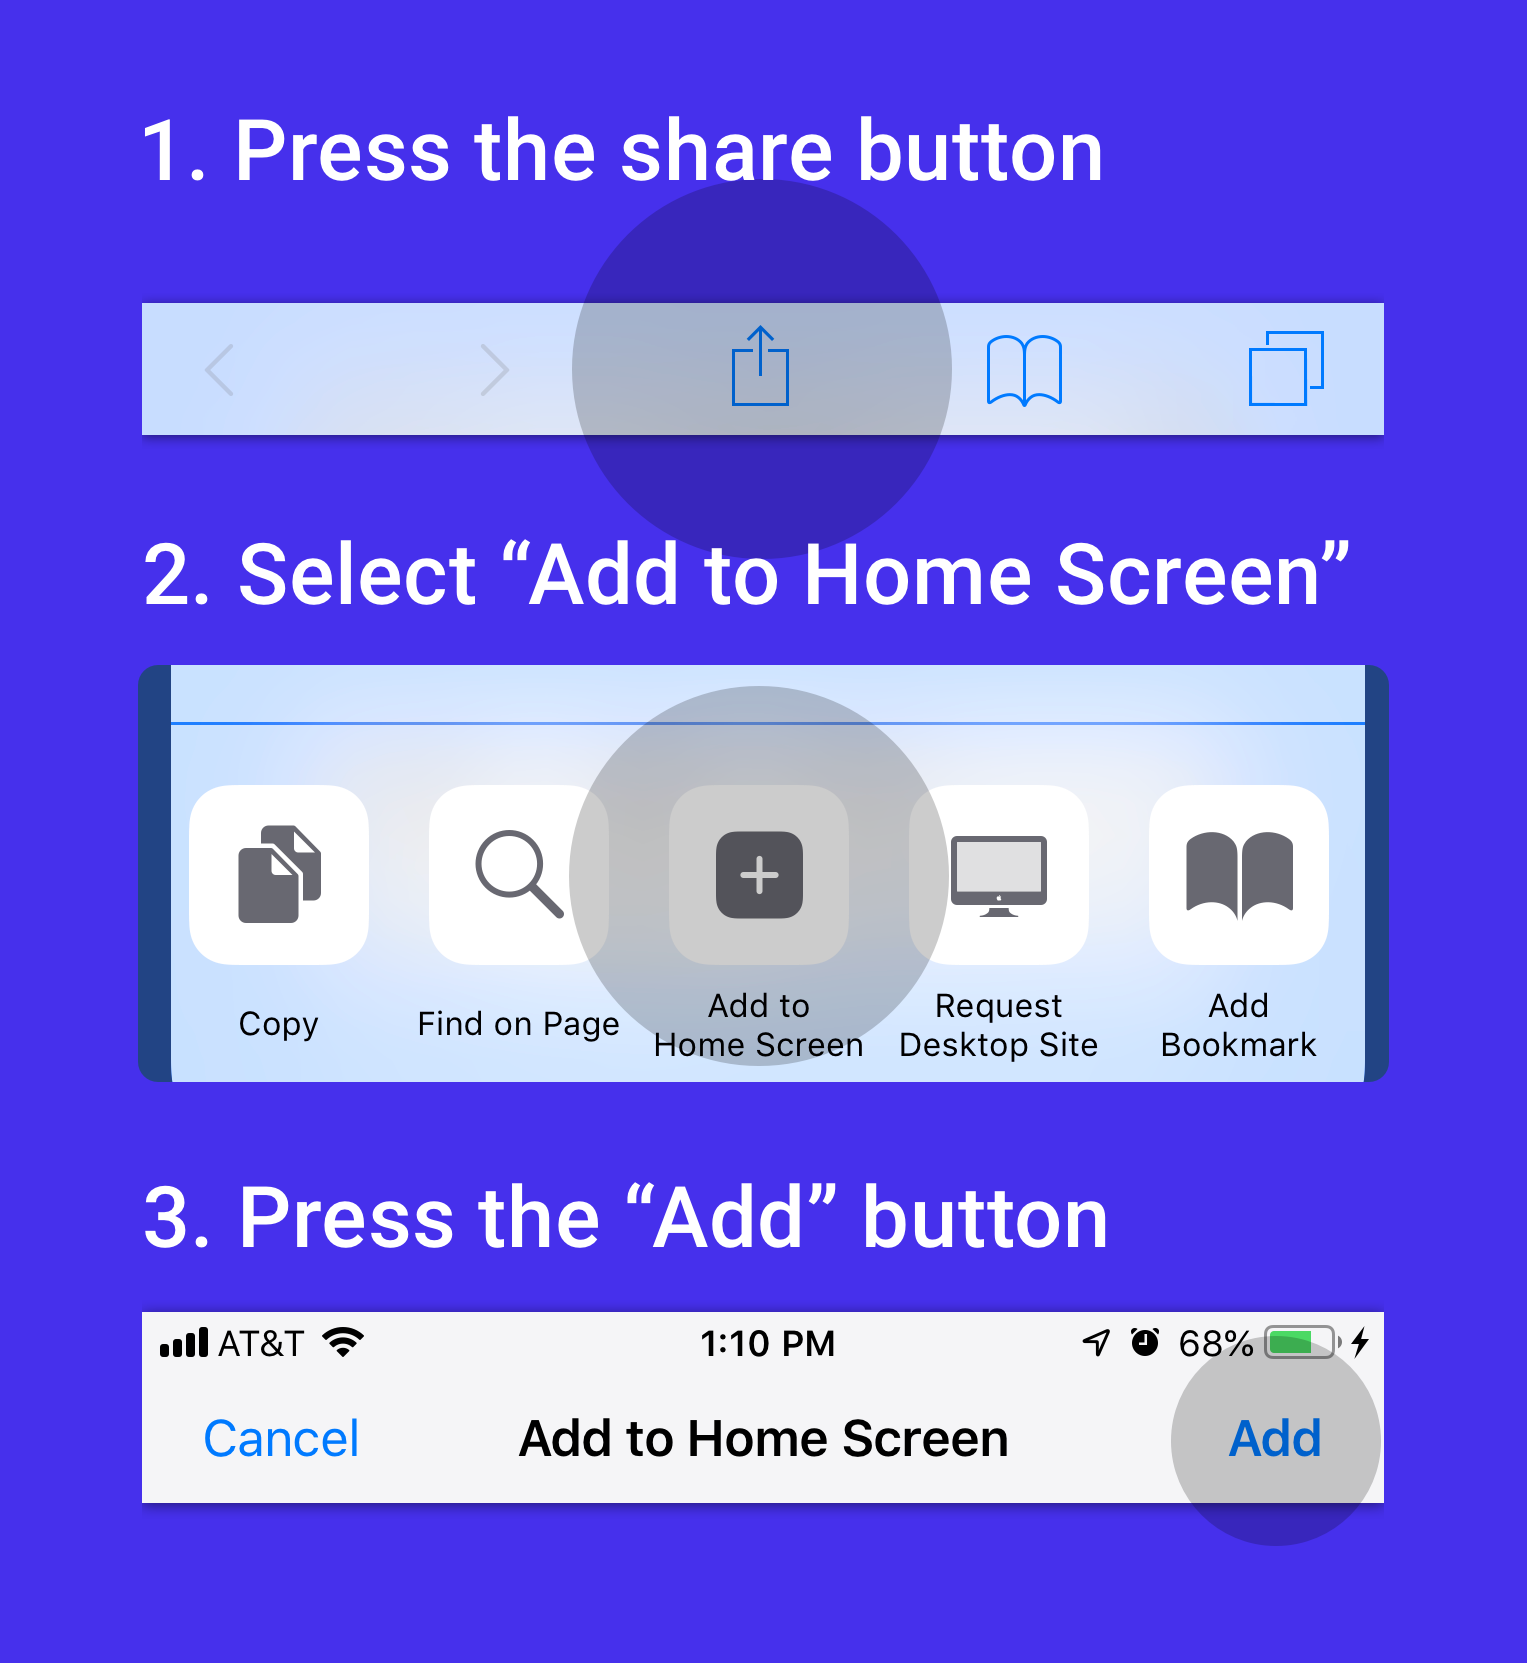 Add to Home Screen on iOS devices.